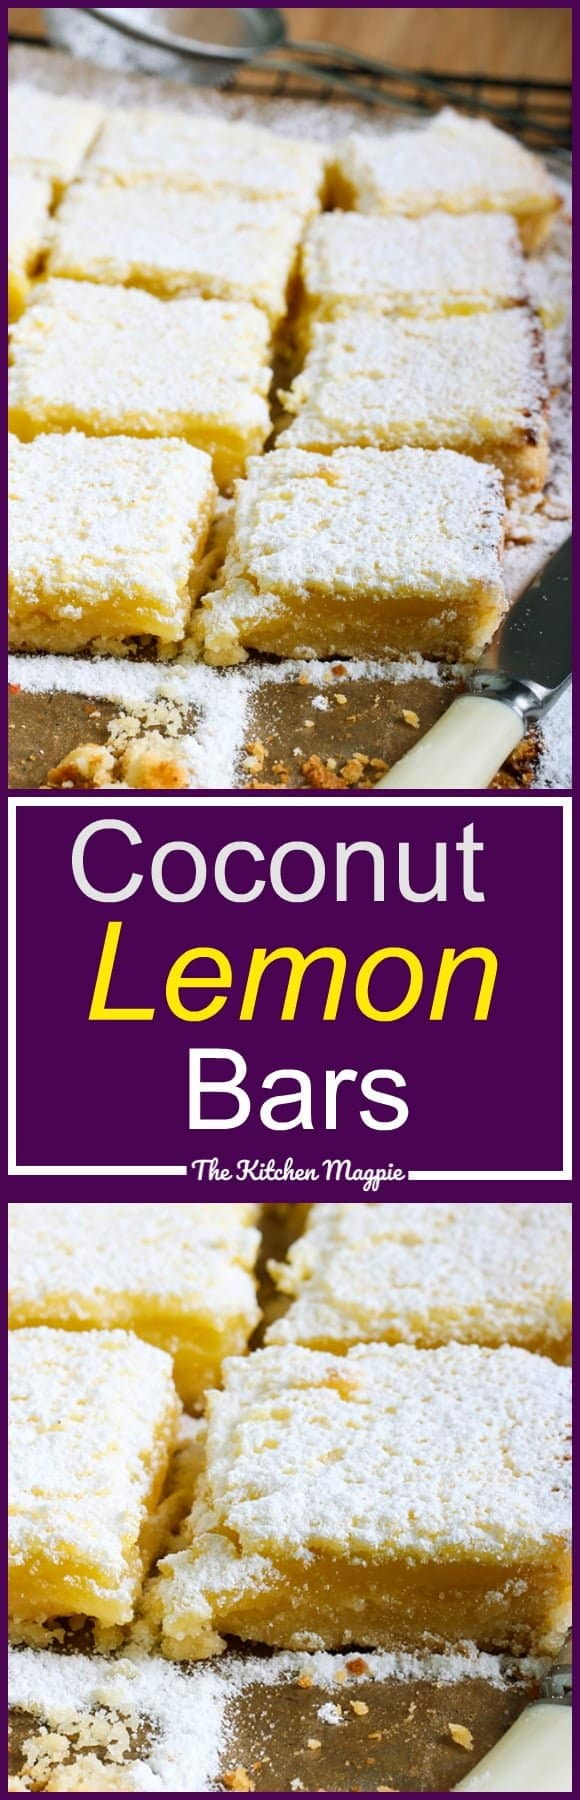 Lemon Bars with Coconut! These no-fail squares are perfect for any holiday! Or a Monday. Recipe from @kitchenmagpie. #lemon #lemonbars #recipe #dessert #christmas